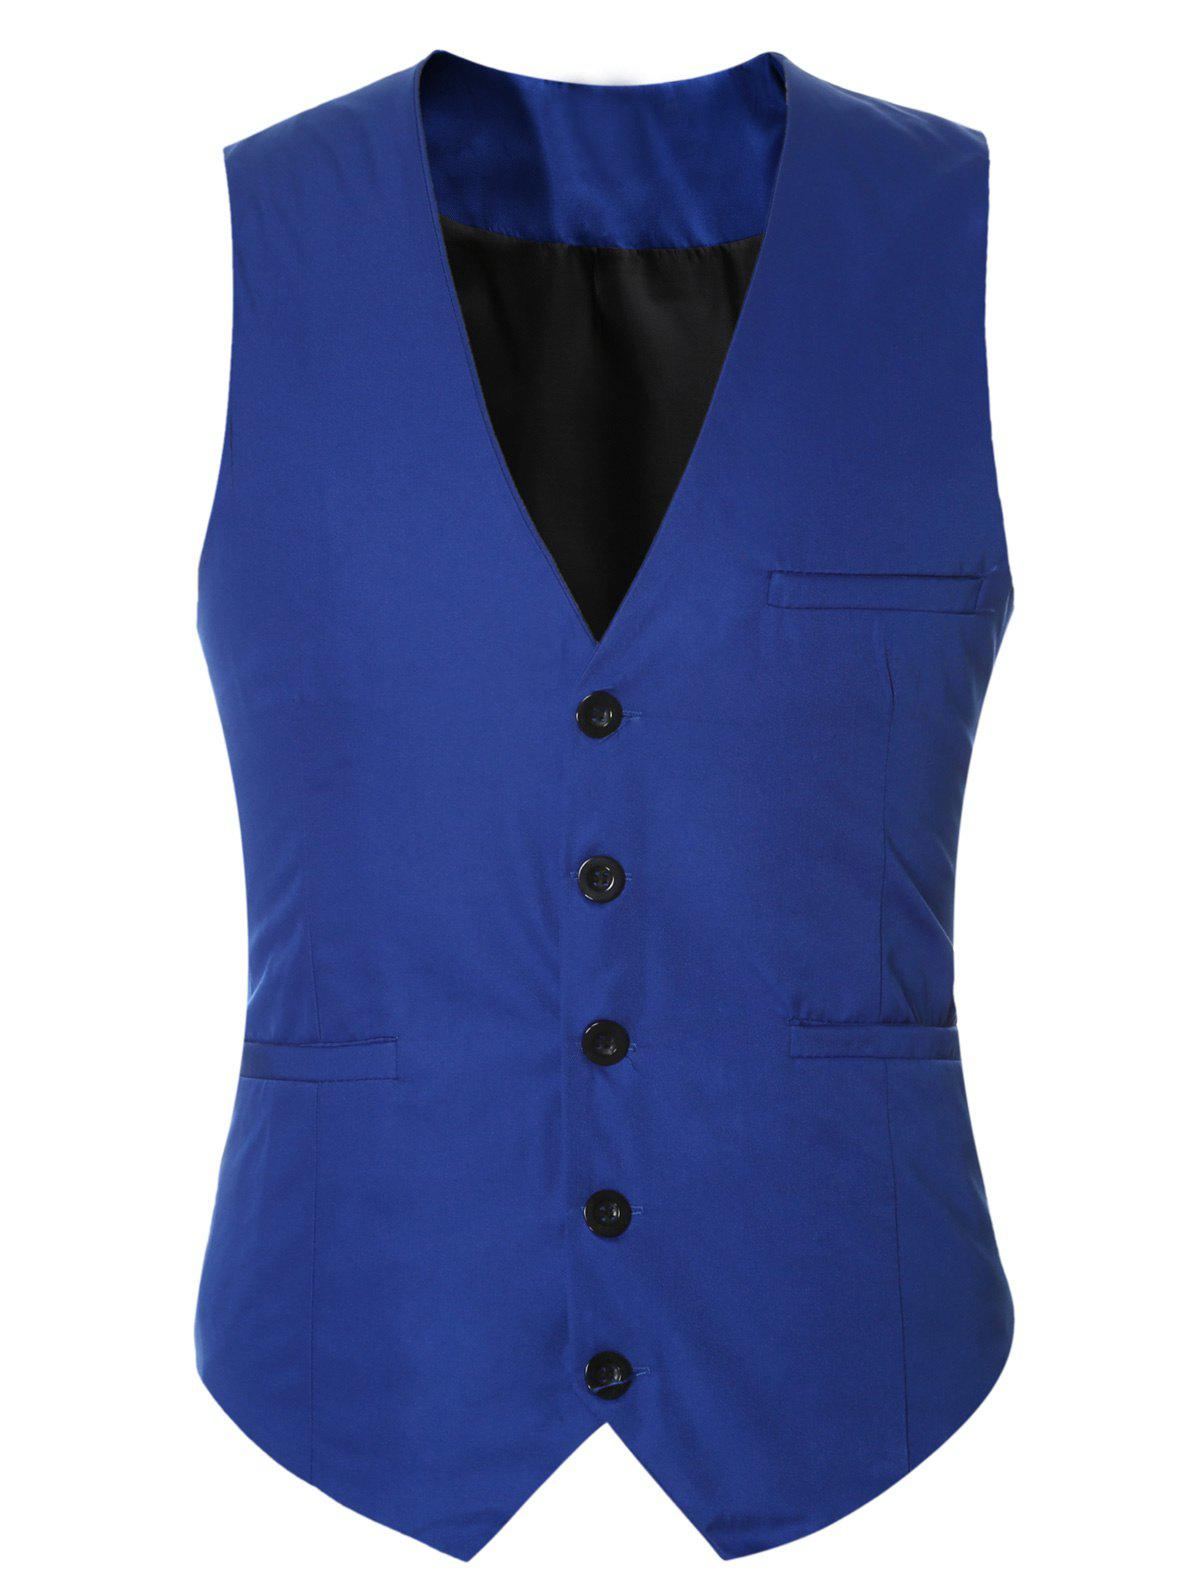 Buckle Back Solid Color Single Breasted Men's Vest the king of style dressing michael jackson